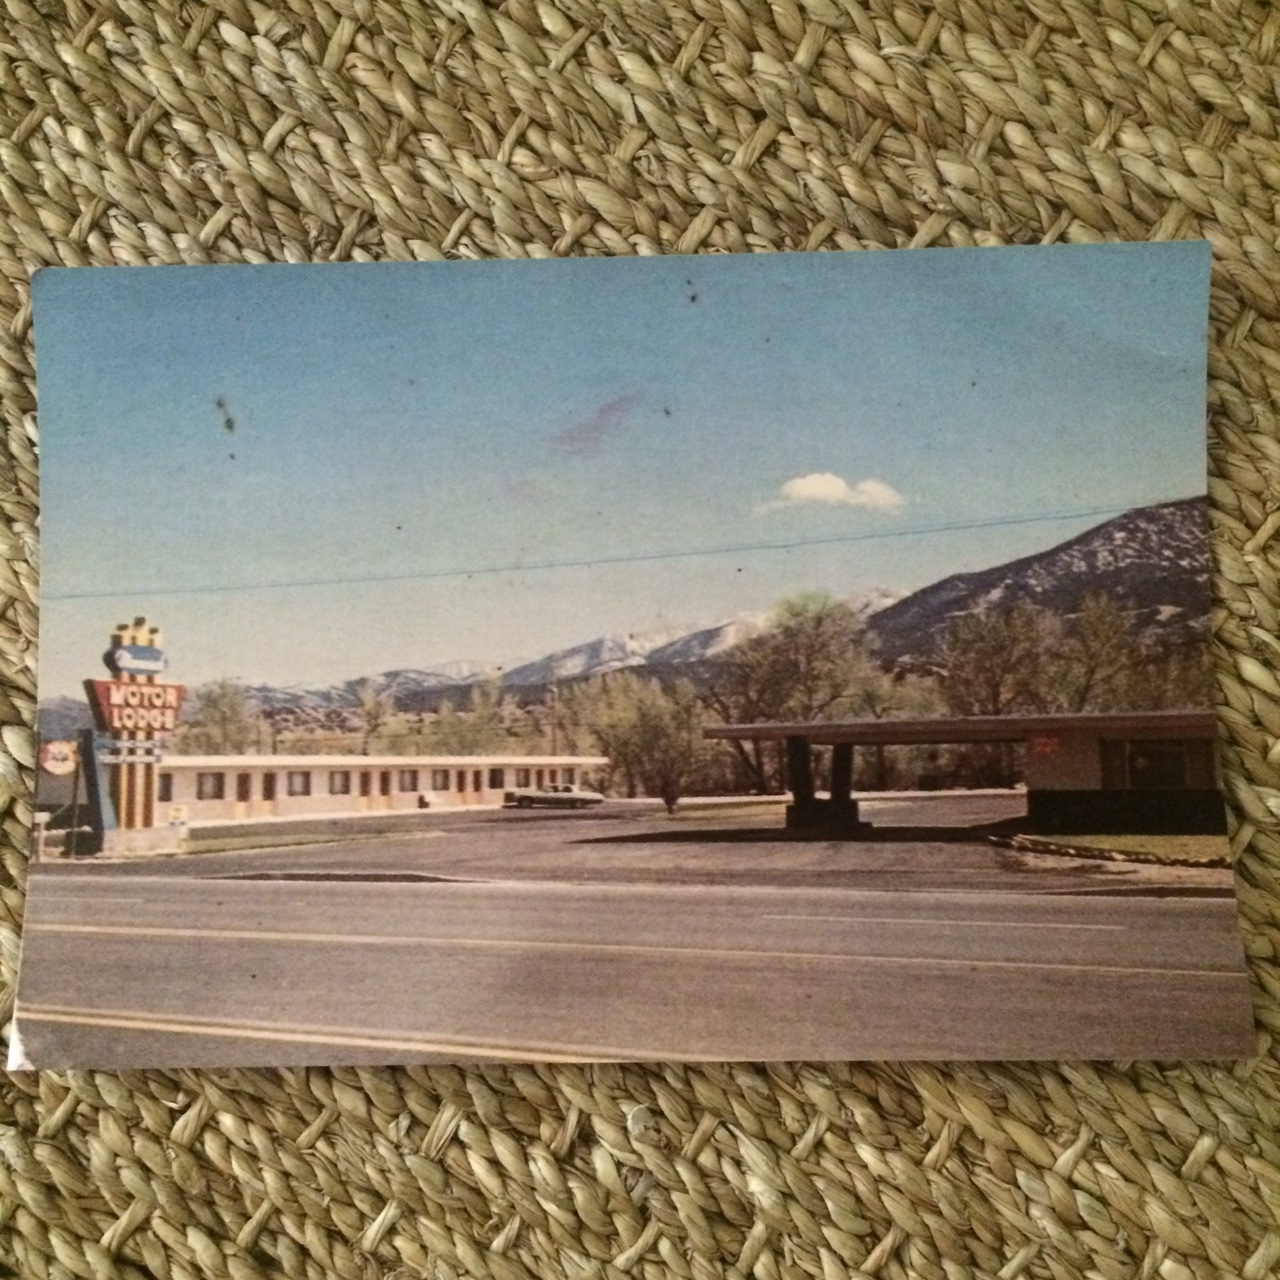 The current owners gave us this photograph of the property as it stood perhaps 30-40 years ago.  Originally it was called the Monarch Motor Lodge and then changed to the Aspen Leaf Motel in the 90s.